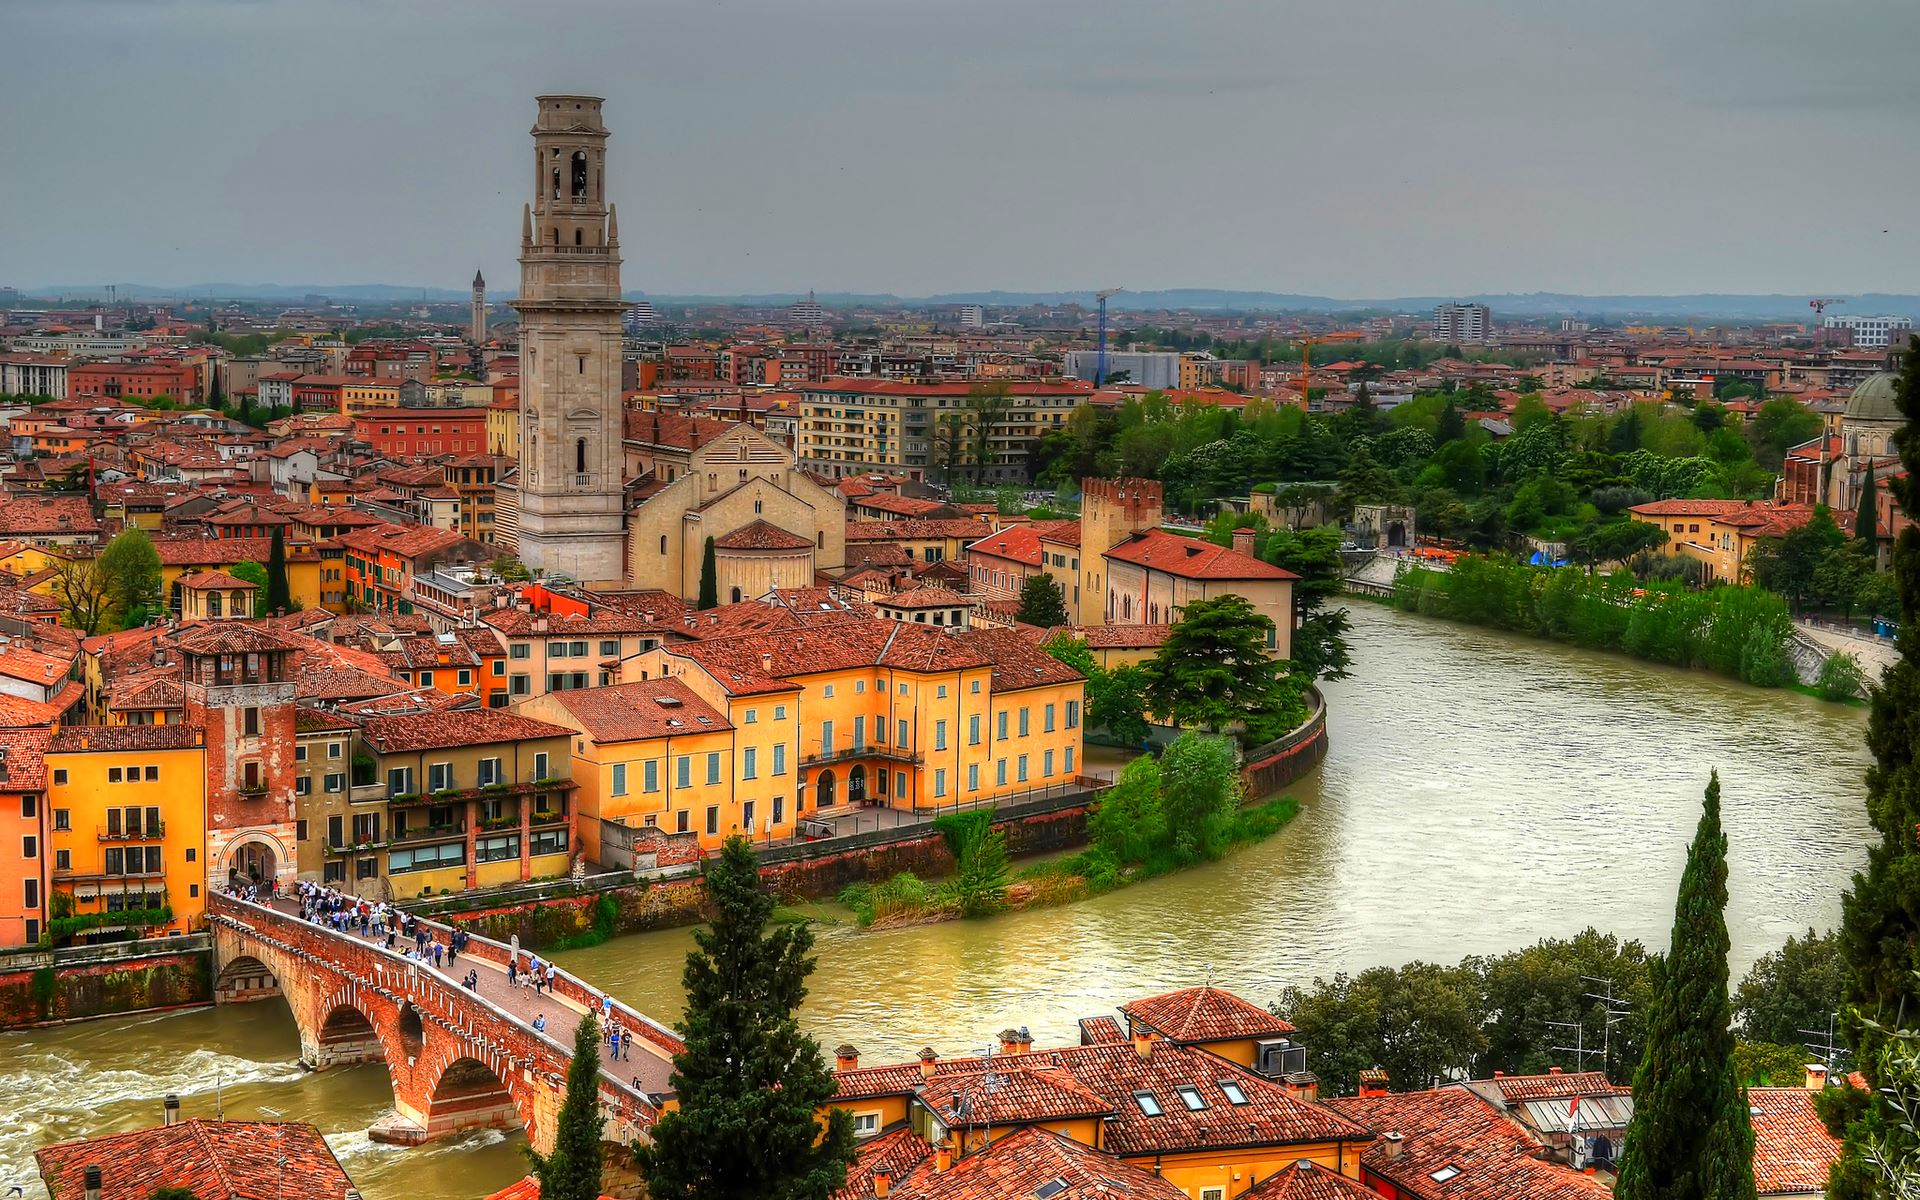 Beautiful Verona, Italy - HD wallpaper download. Wallpapers, pictures ...